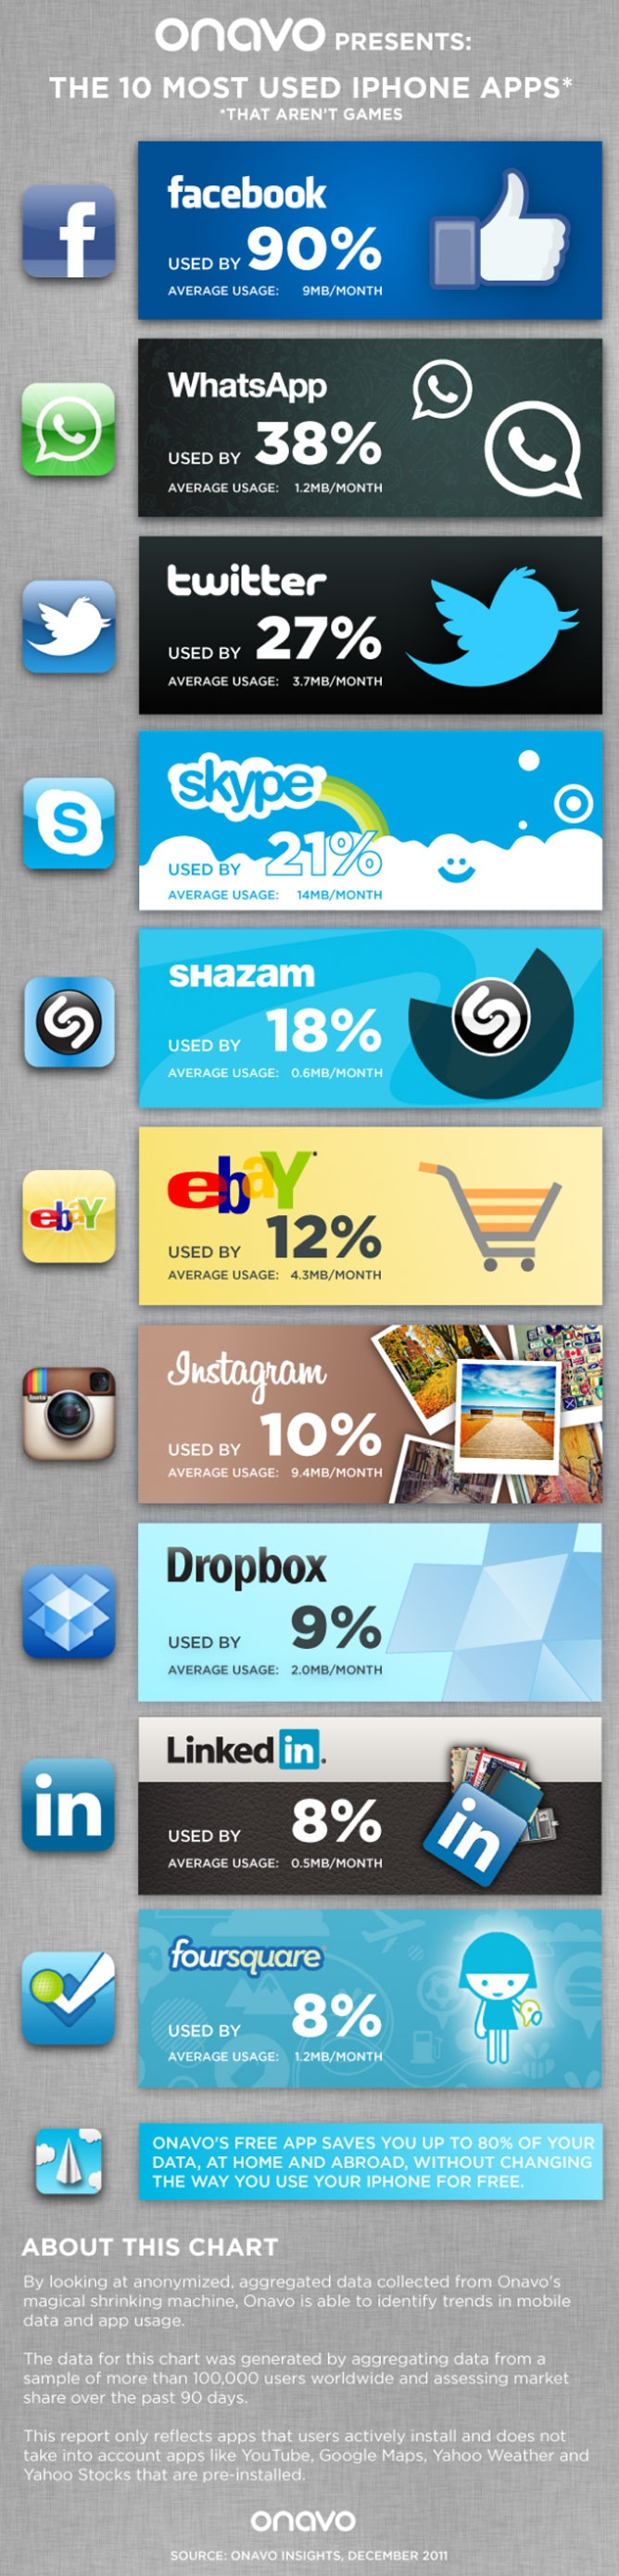 Top 10 most used iPhone apps.